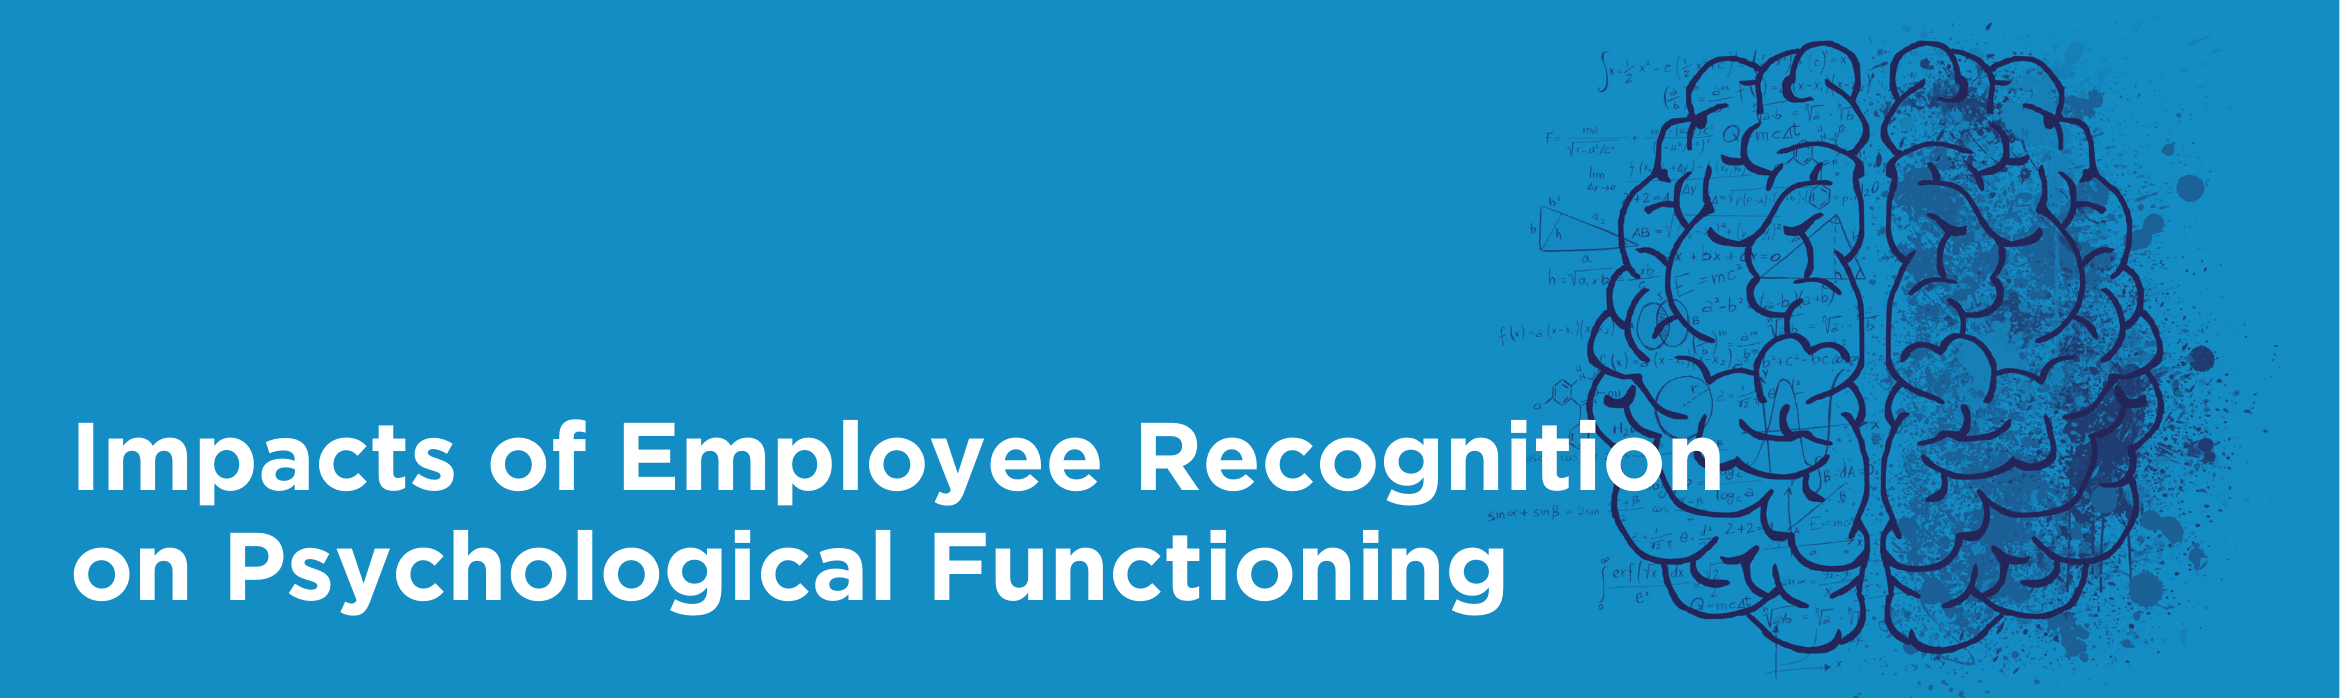 Impacts of Employee Recognition on Psychological Functioning